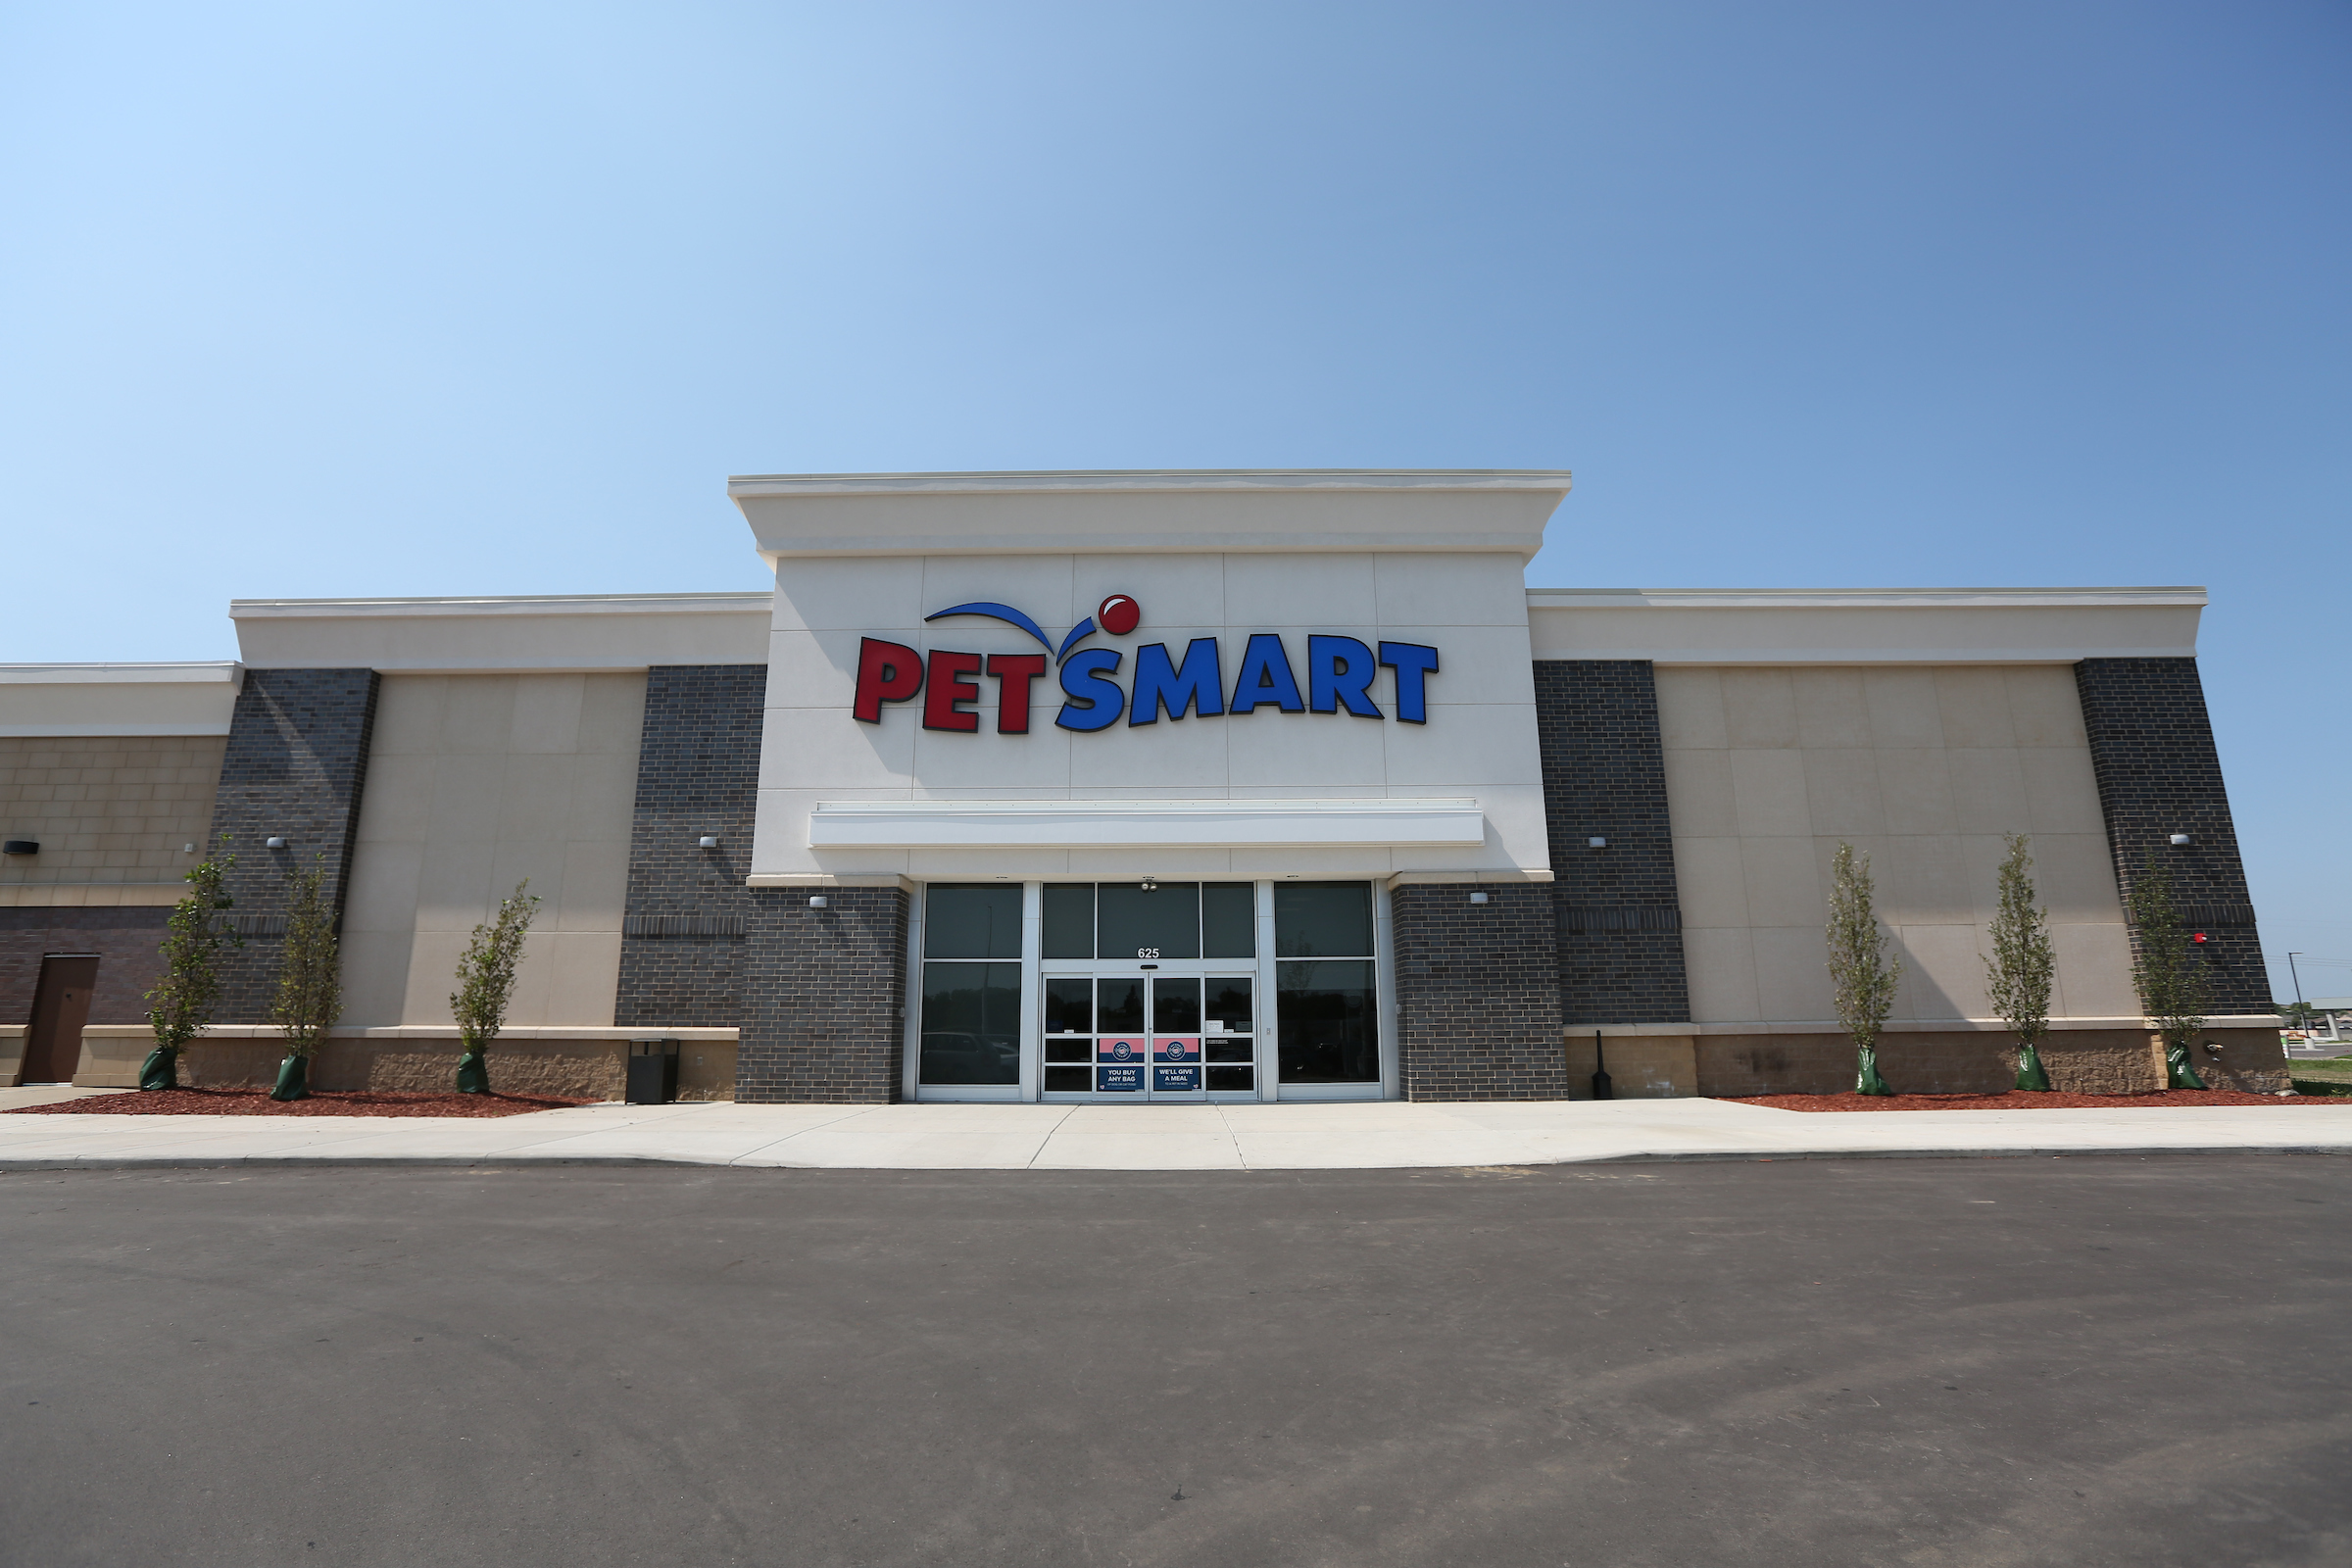 Dawleysmart Retail Ernst Capital Group Private Equity Real Estate